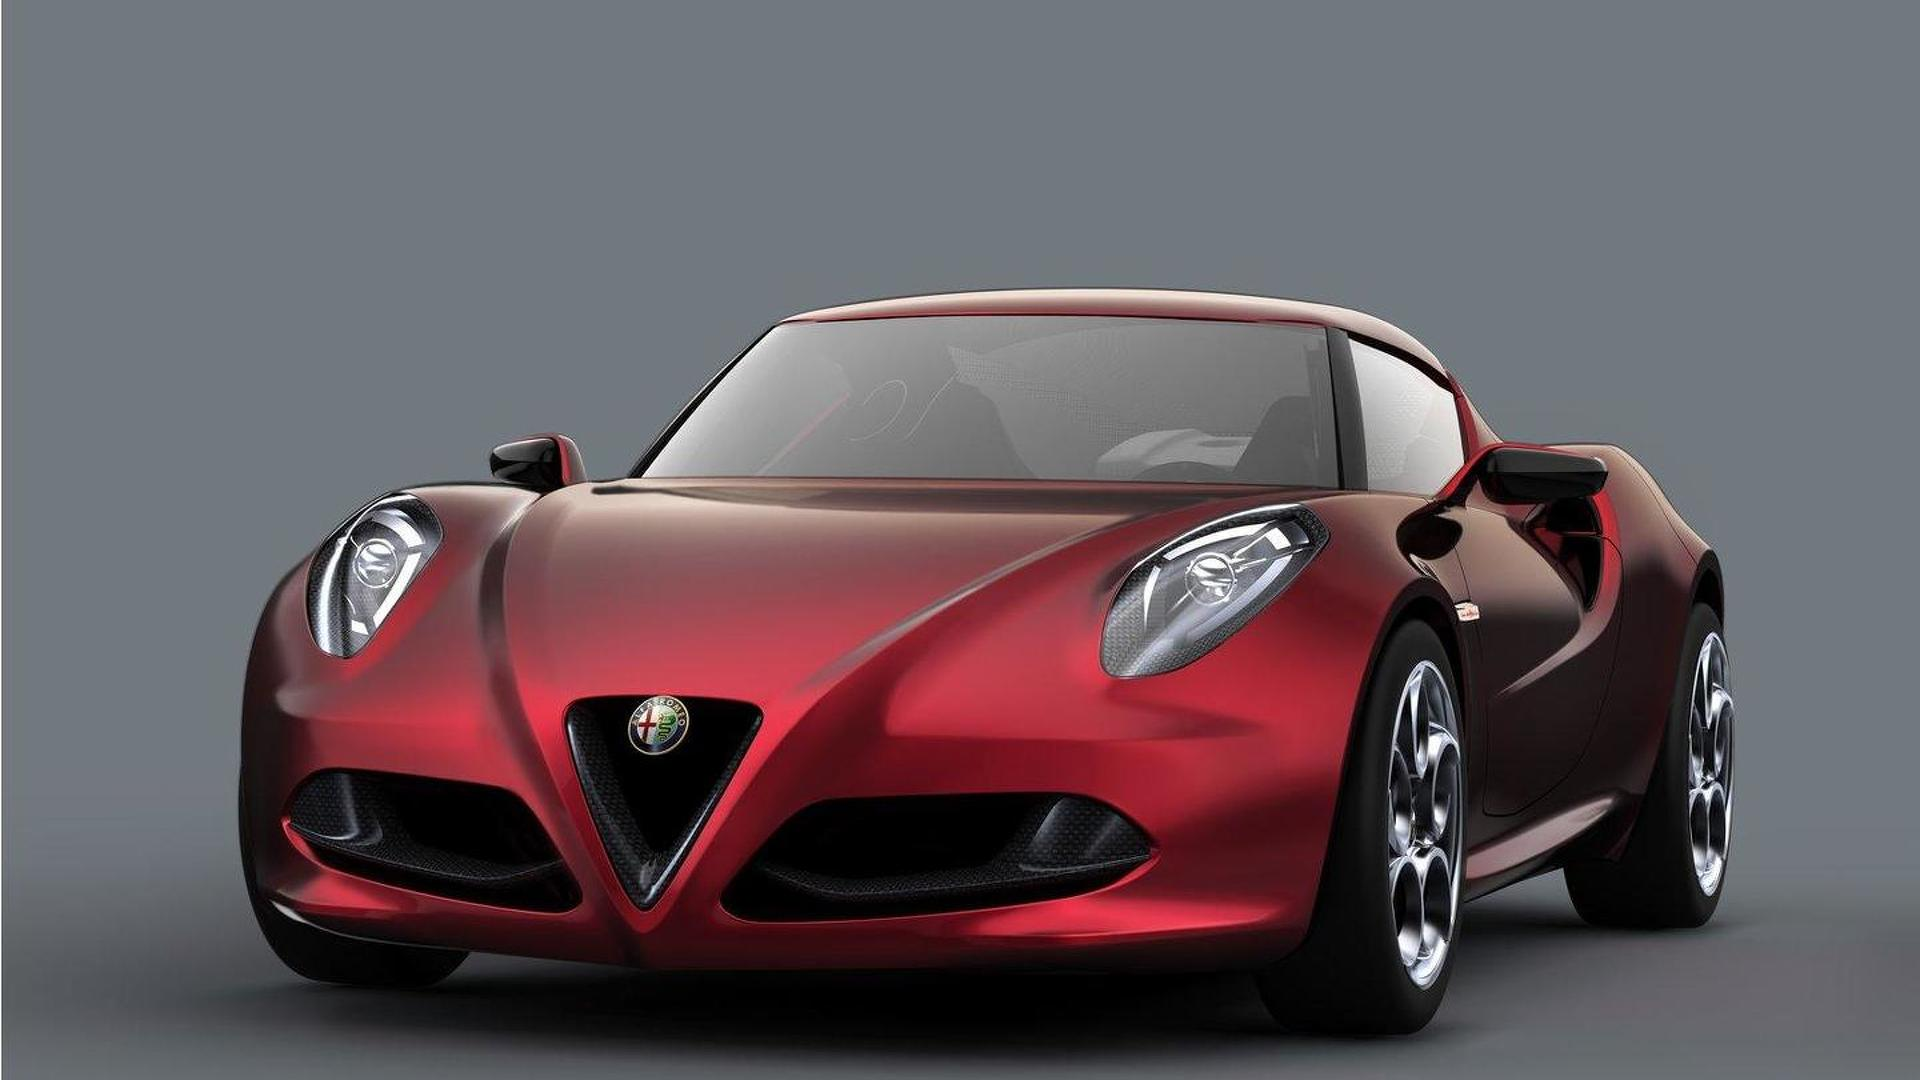 Alfa Romeo 4C will be sold in U.S.